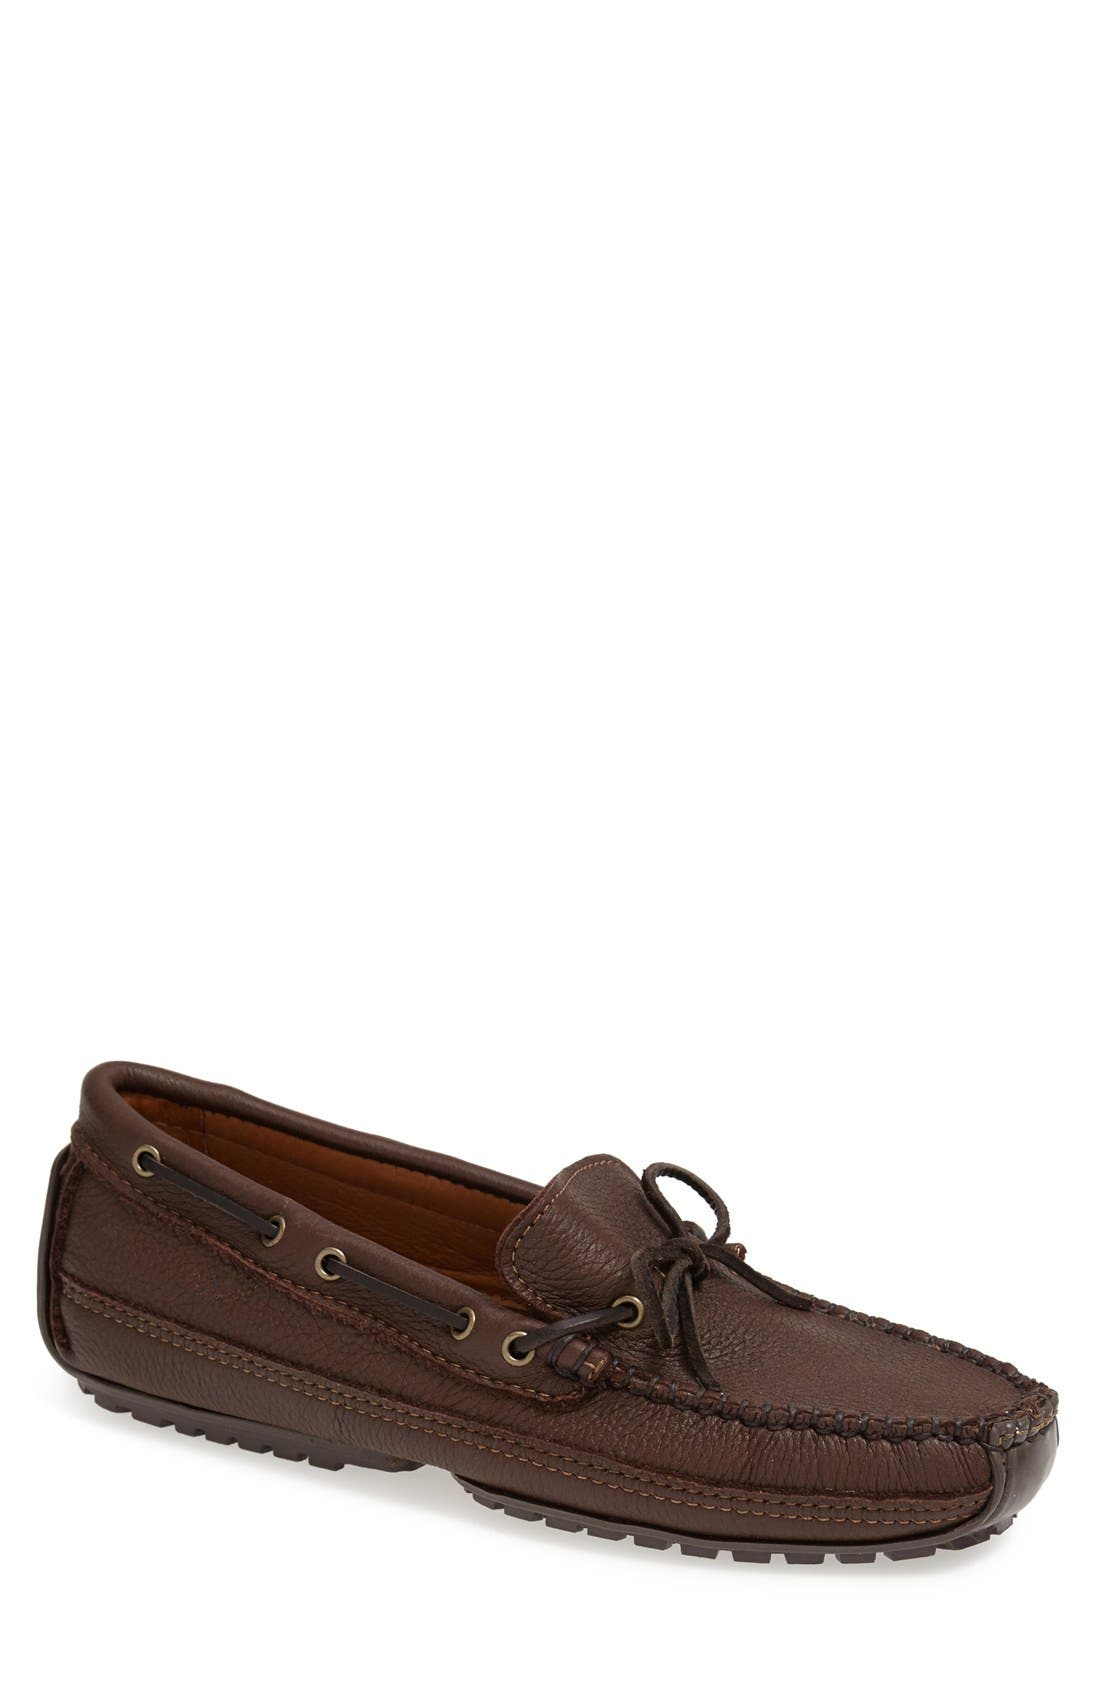 Moosehide Moccasin,                             Main thumbnail 1, color,                             CHOCOLATE